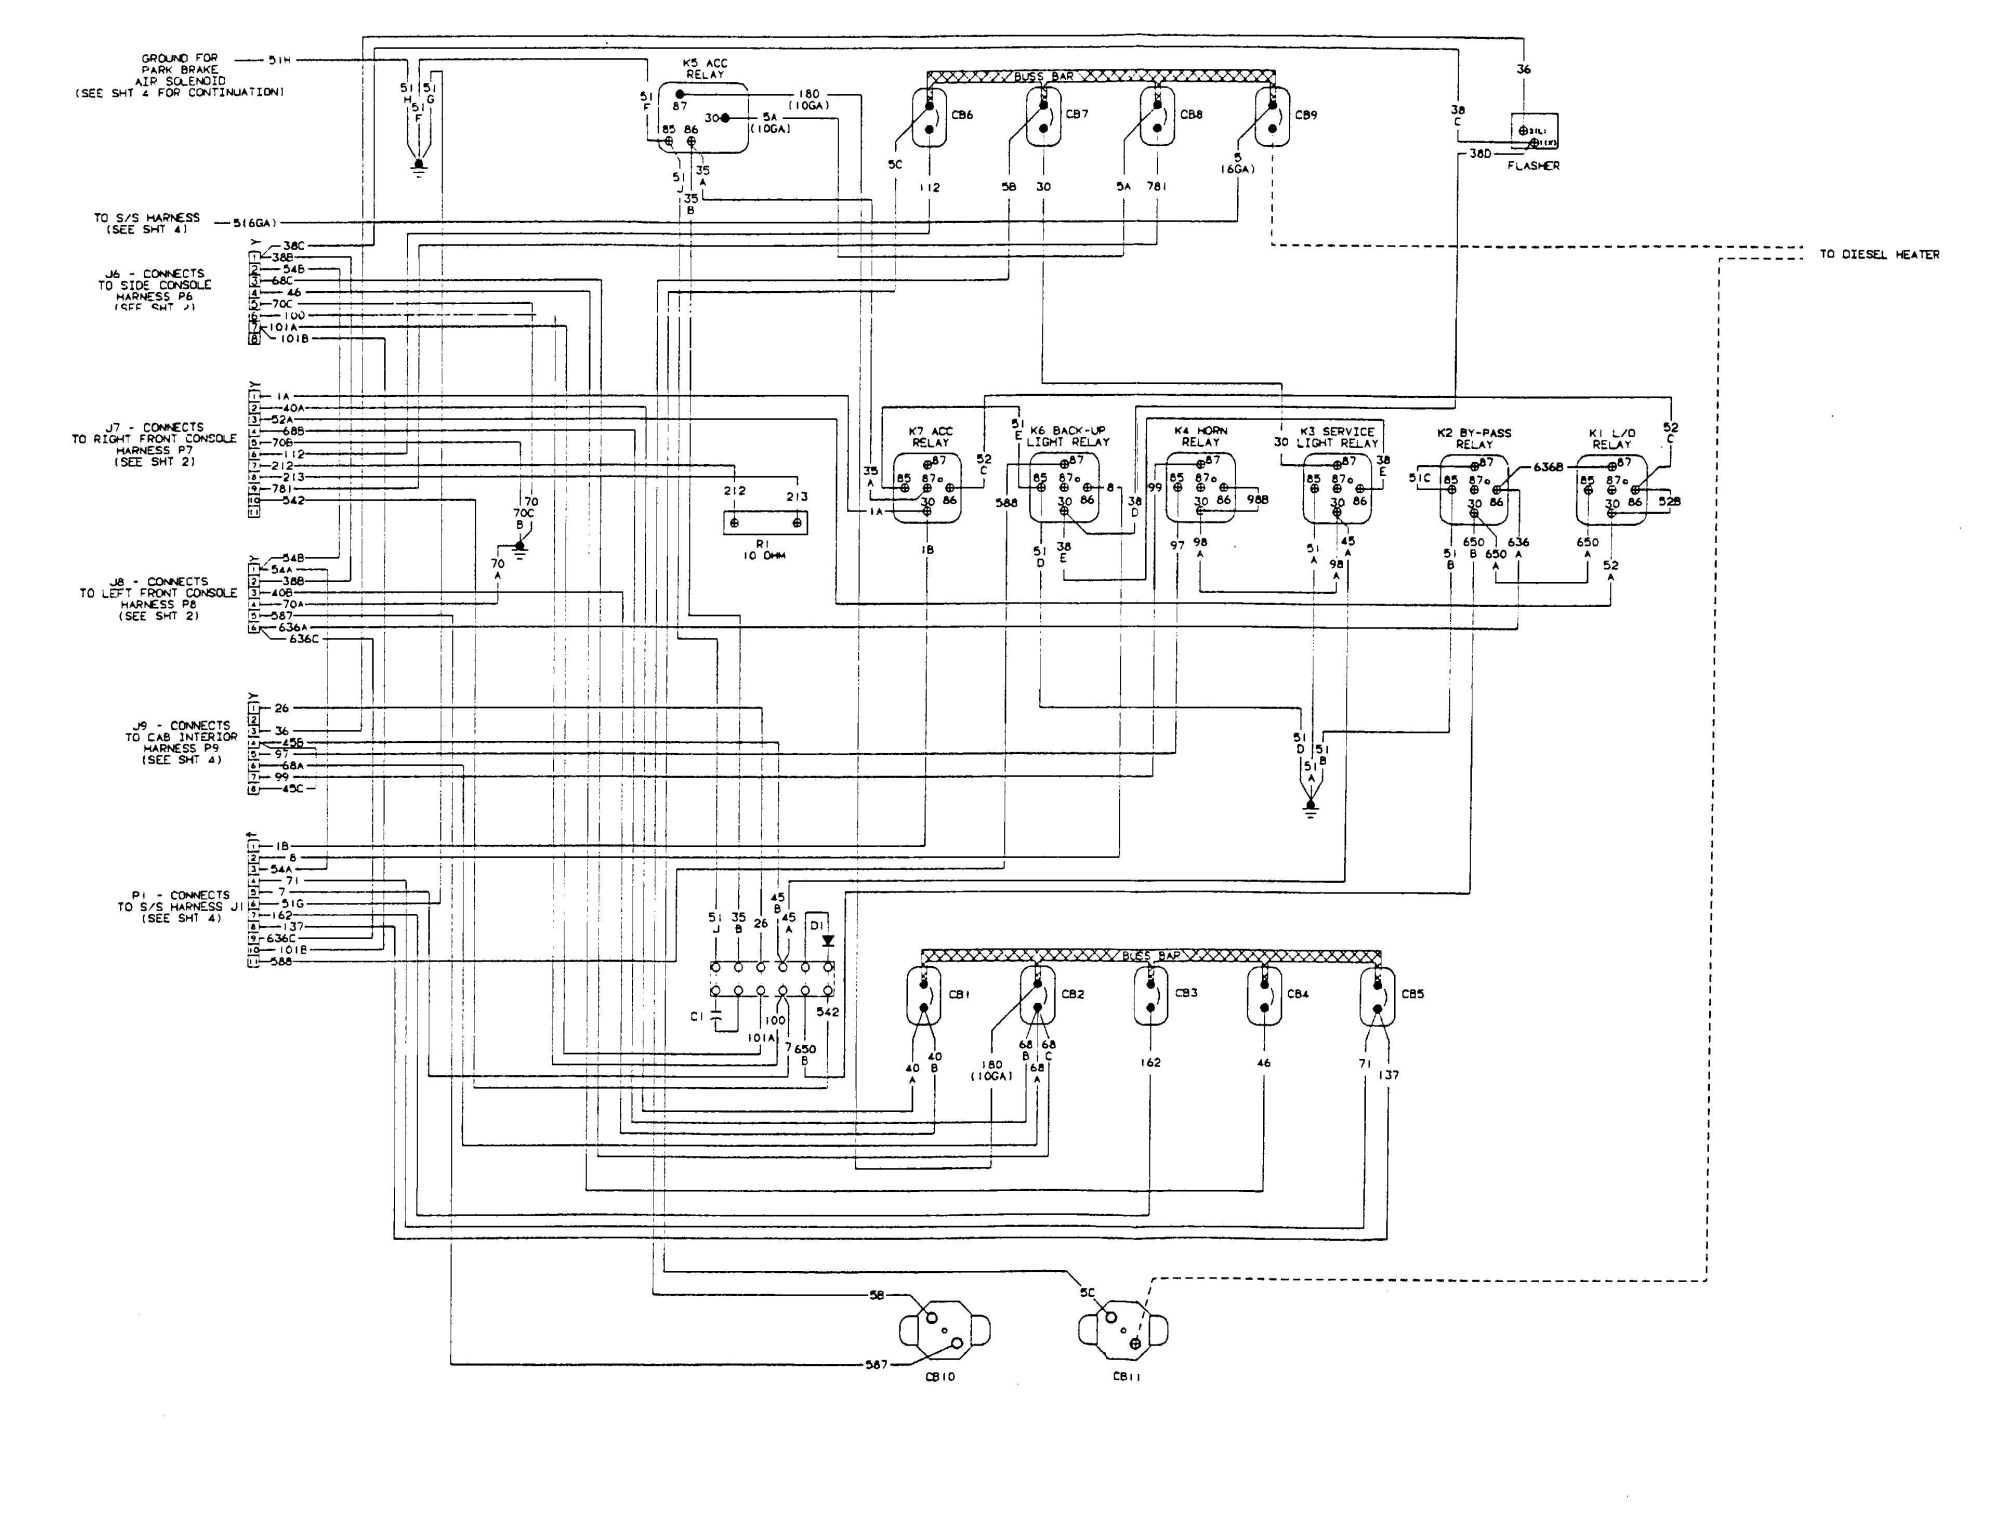 hight resolution of crane xr700 wiring diagram crane xr700 wiring diagram to for mdmp 1001 02 ignition systems